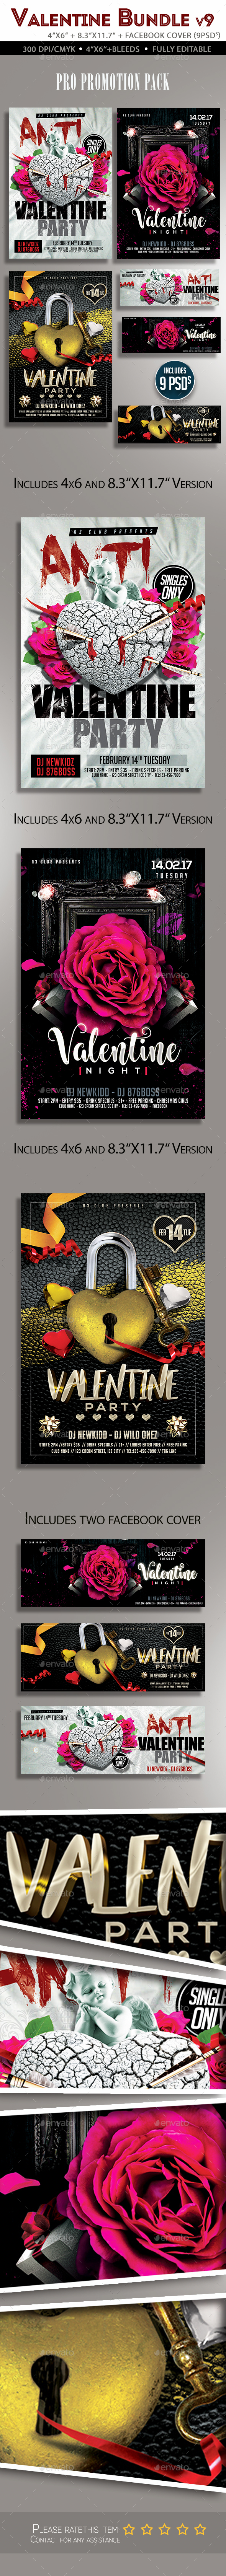 Valentine Flyer Bundle v9 - Clubs & Parties Events